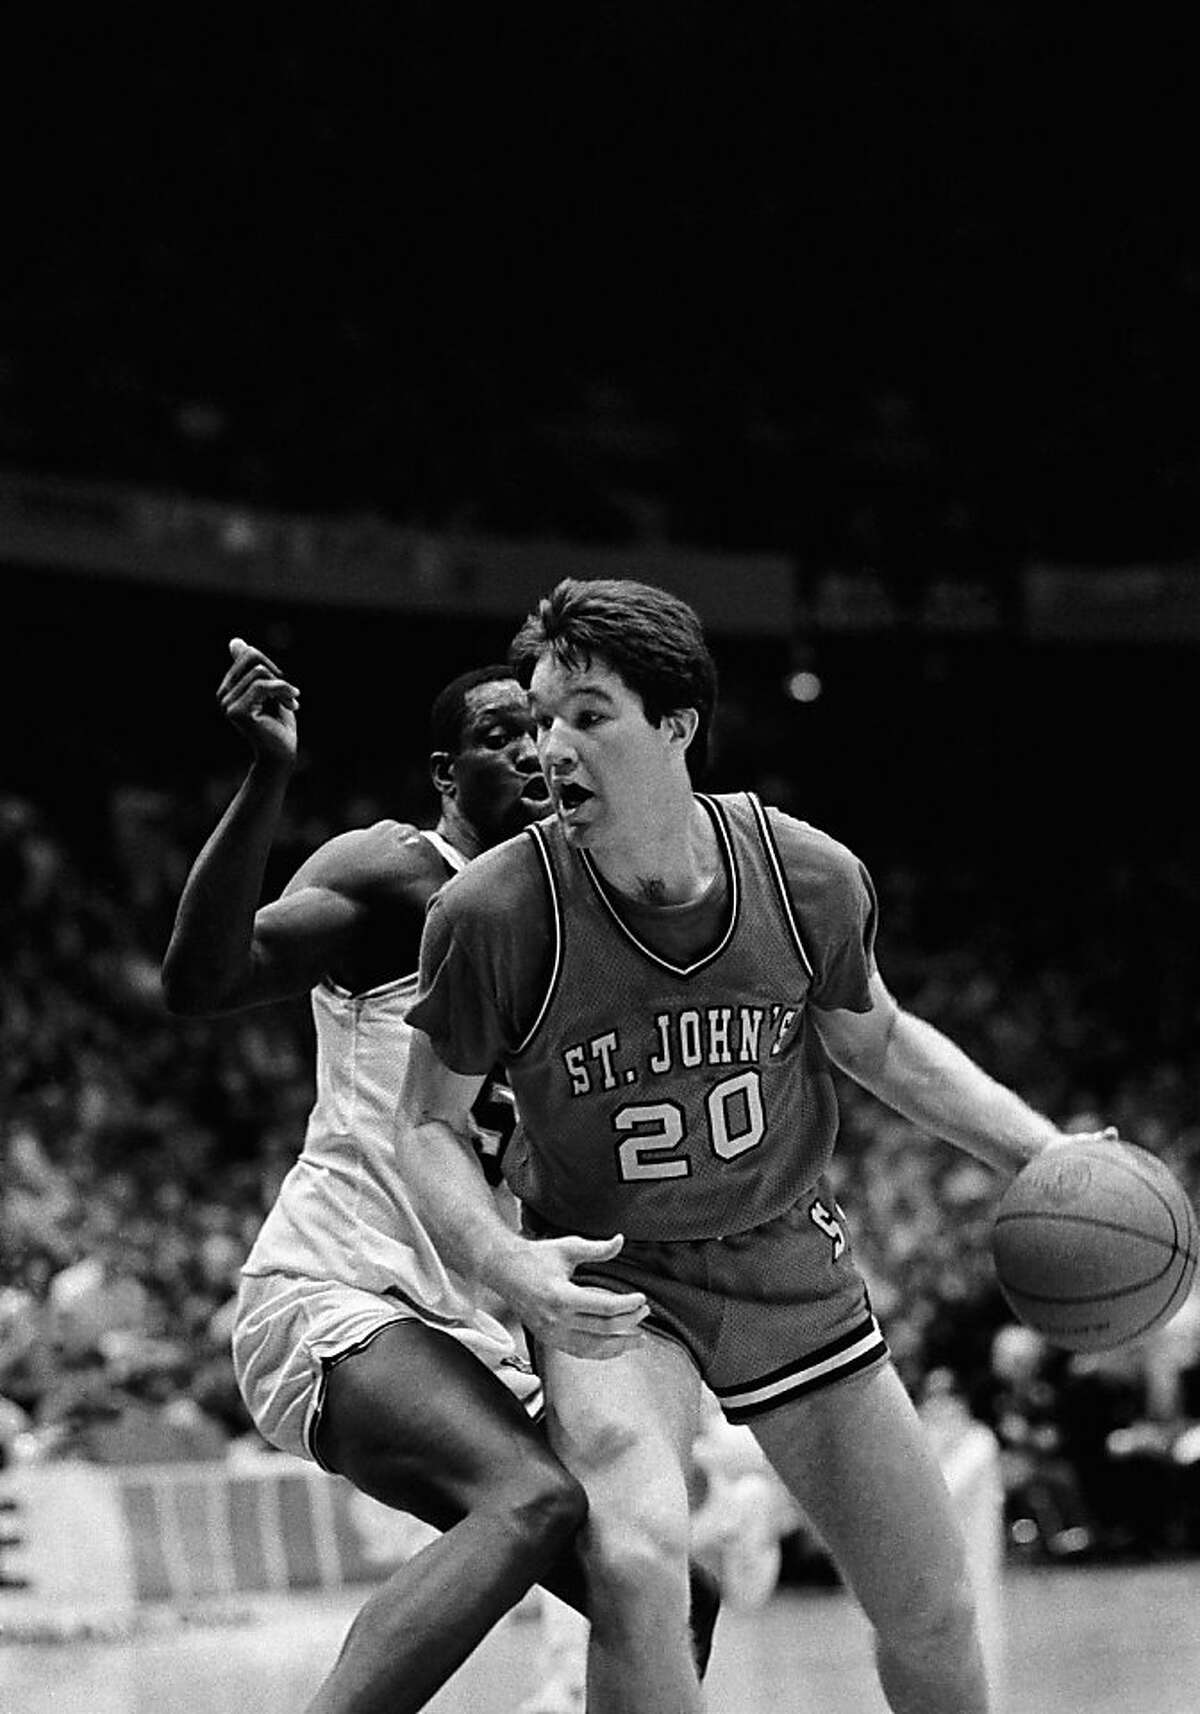 St. John's Chris Mullin drives to the basket around Villanova's Ed Pinckney in the second half of play in Philadelphia on Saturday, Feb.9, 1985. Mullin scored 12 of his 21 points in the final 6:14 of the game as top-ranked St. John's rallied to beat Villanova 70-68.(AP Photo)